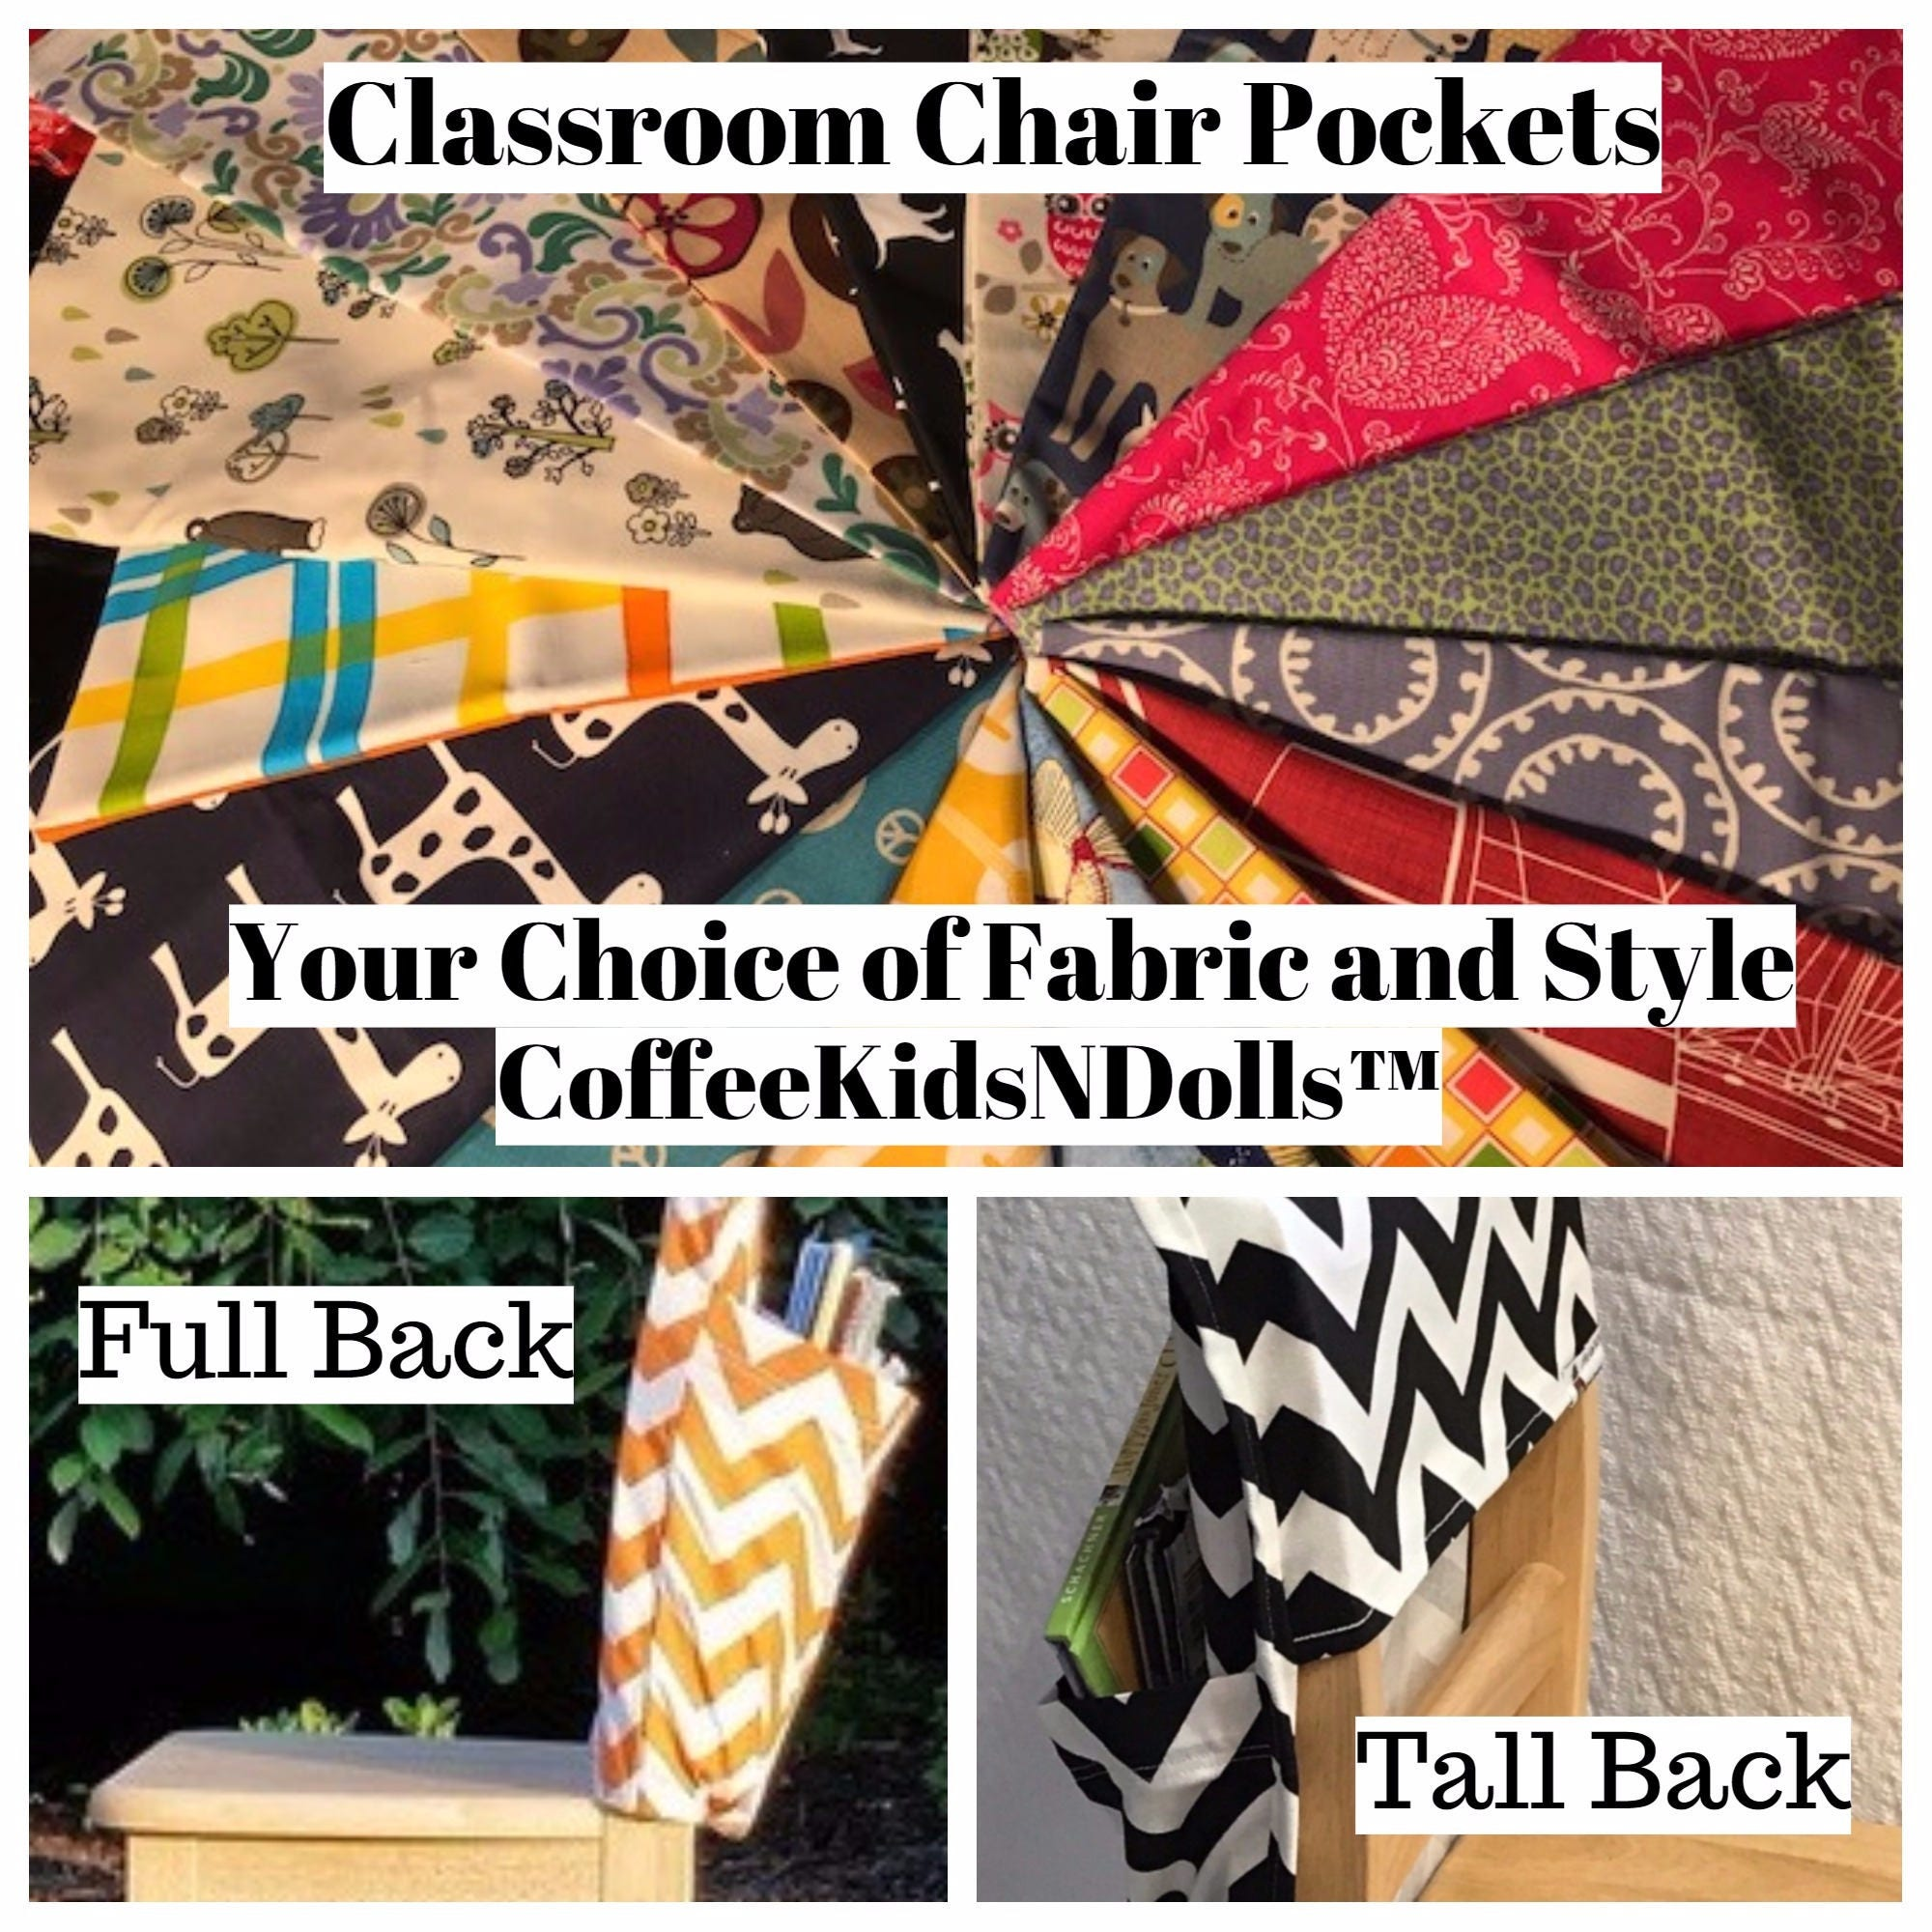 Chair Pockets Seat Sacks YoU ChOoSe Full or Tall Back